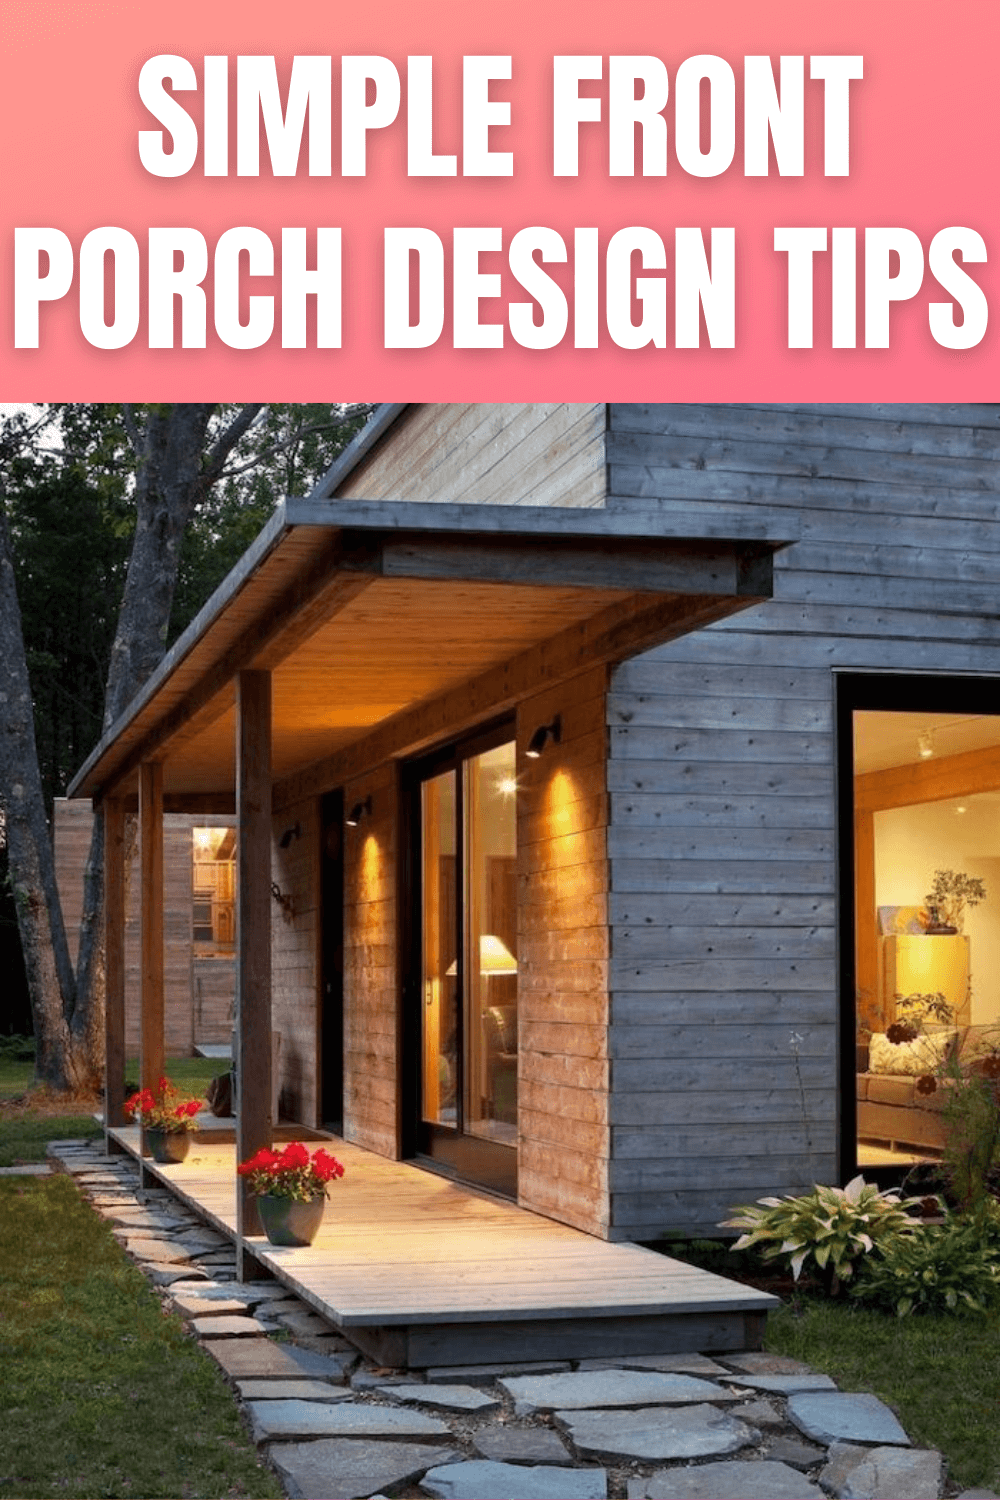 SIMPLE FRONT PORCH DESIGN TIPS